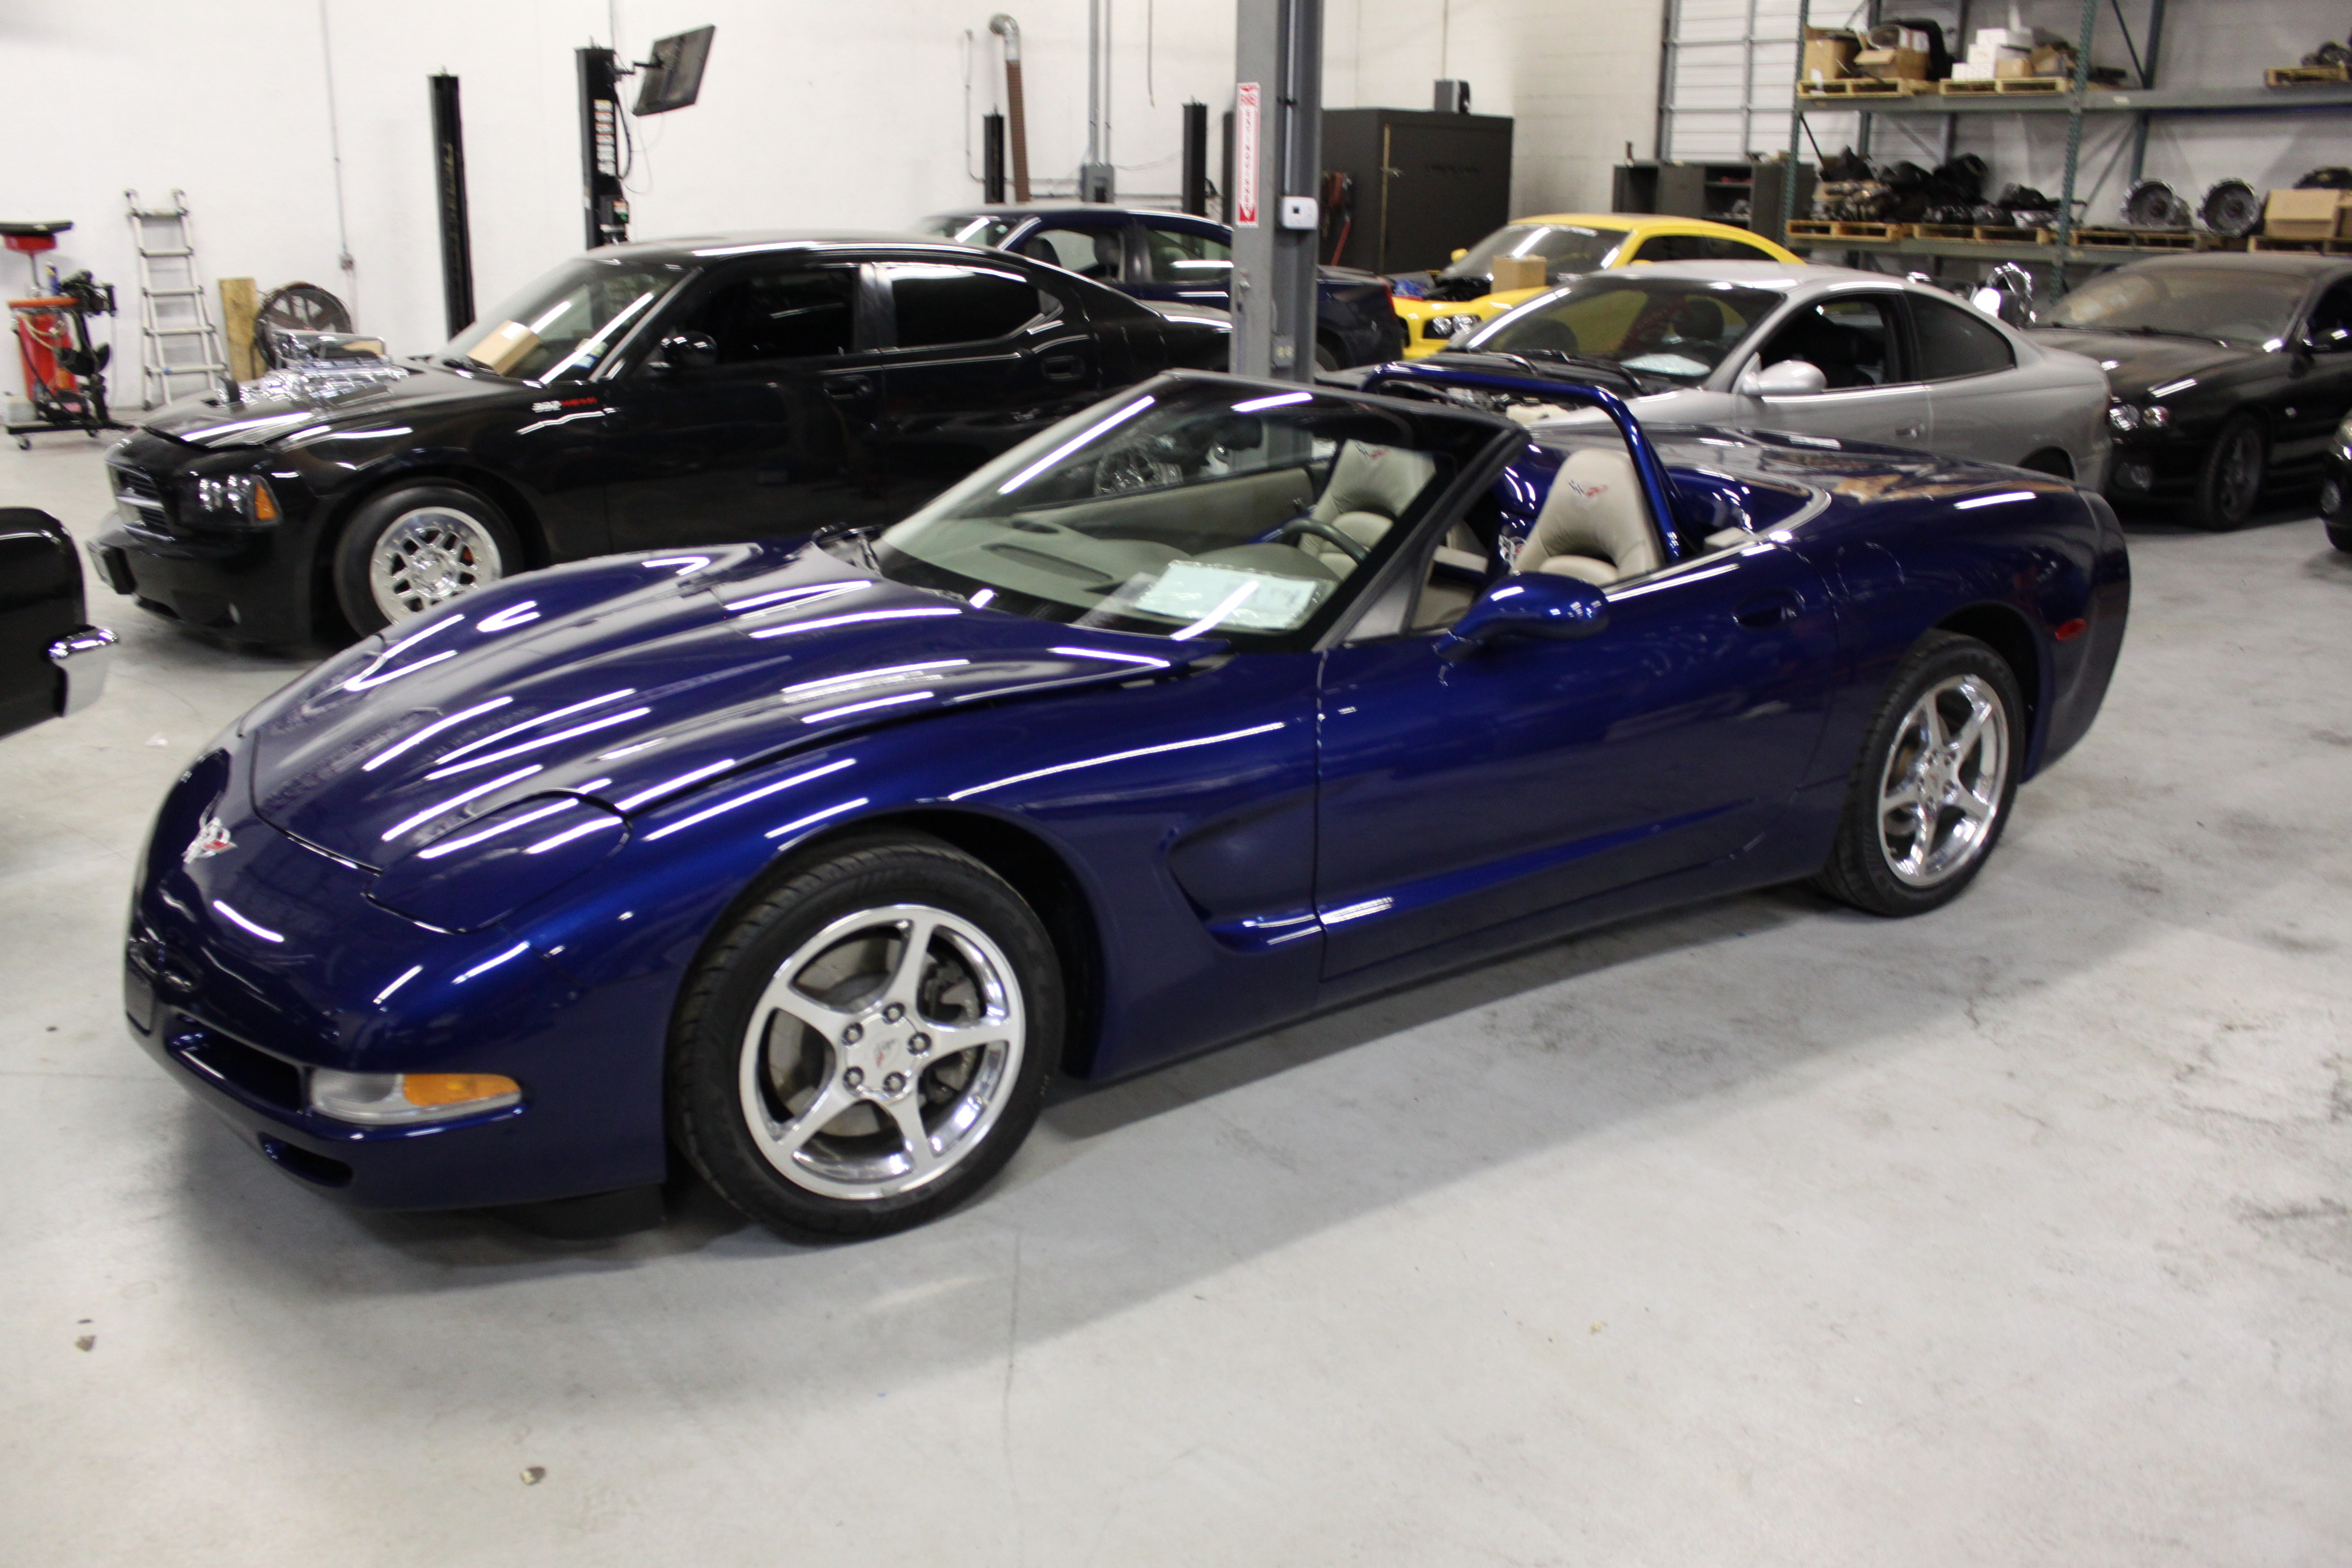 Dodge 5 7 Hemi >> 2004 Chevy Corvette C5 - 383ci Procharged | Modern Muscle